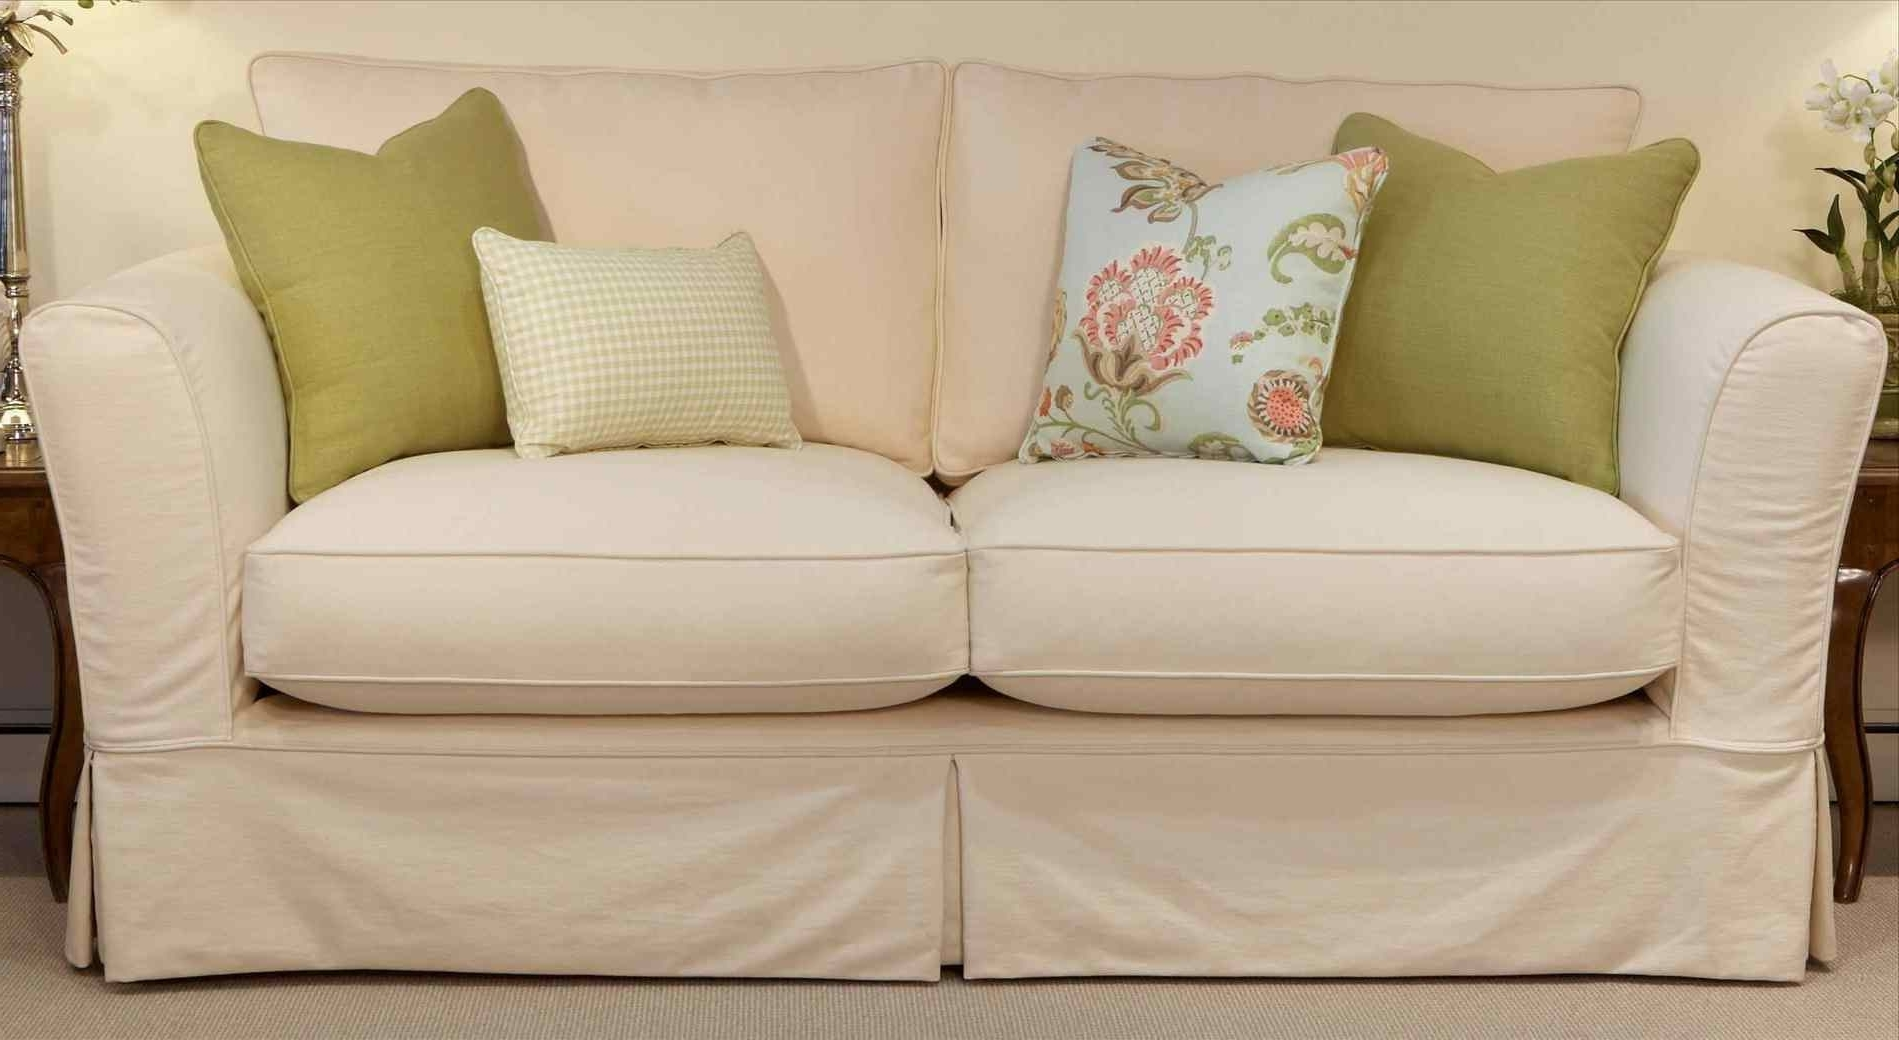 Image Gallery Of Sofas With Removable Covers View 9 20